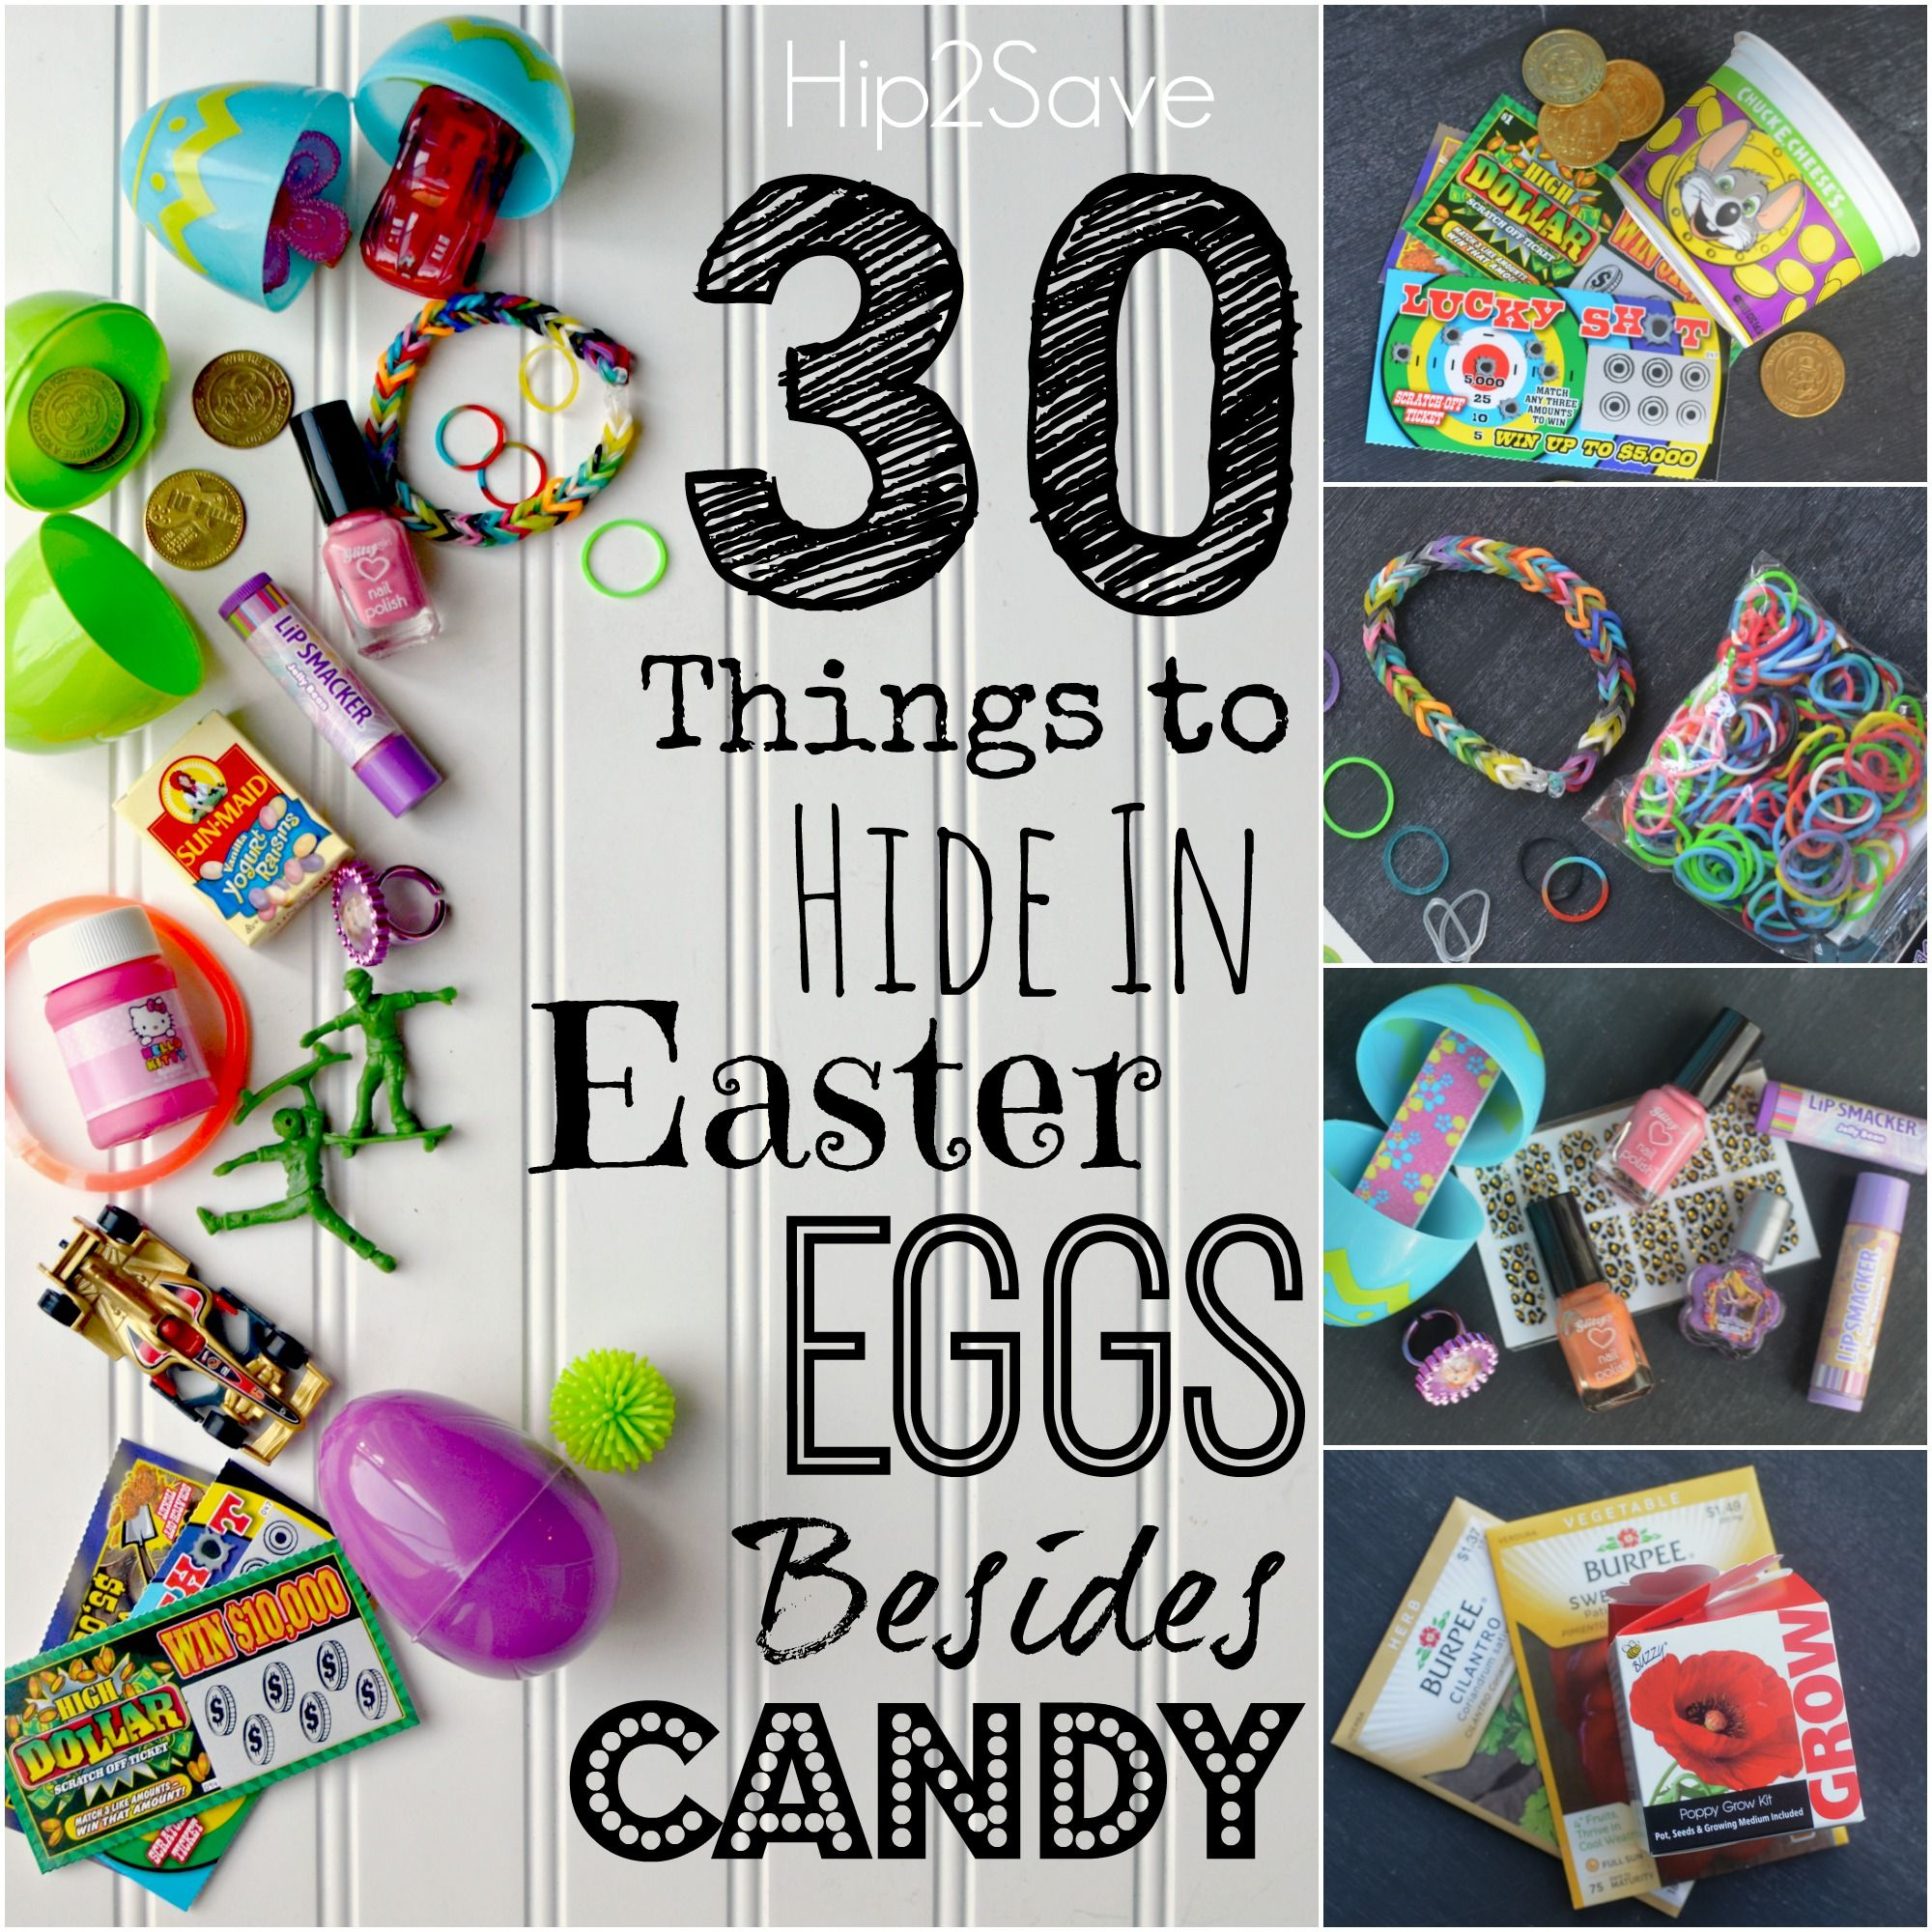 30 Things To Hide In Easter Eggs Besides Candy By Hip2save